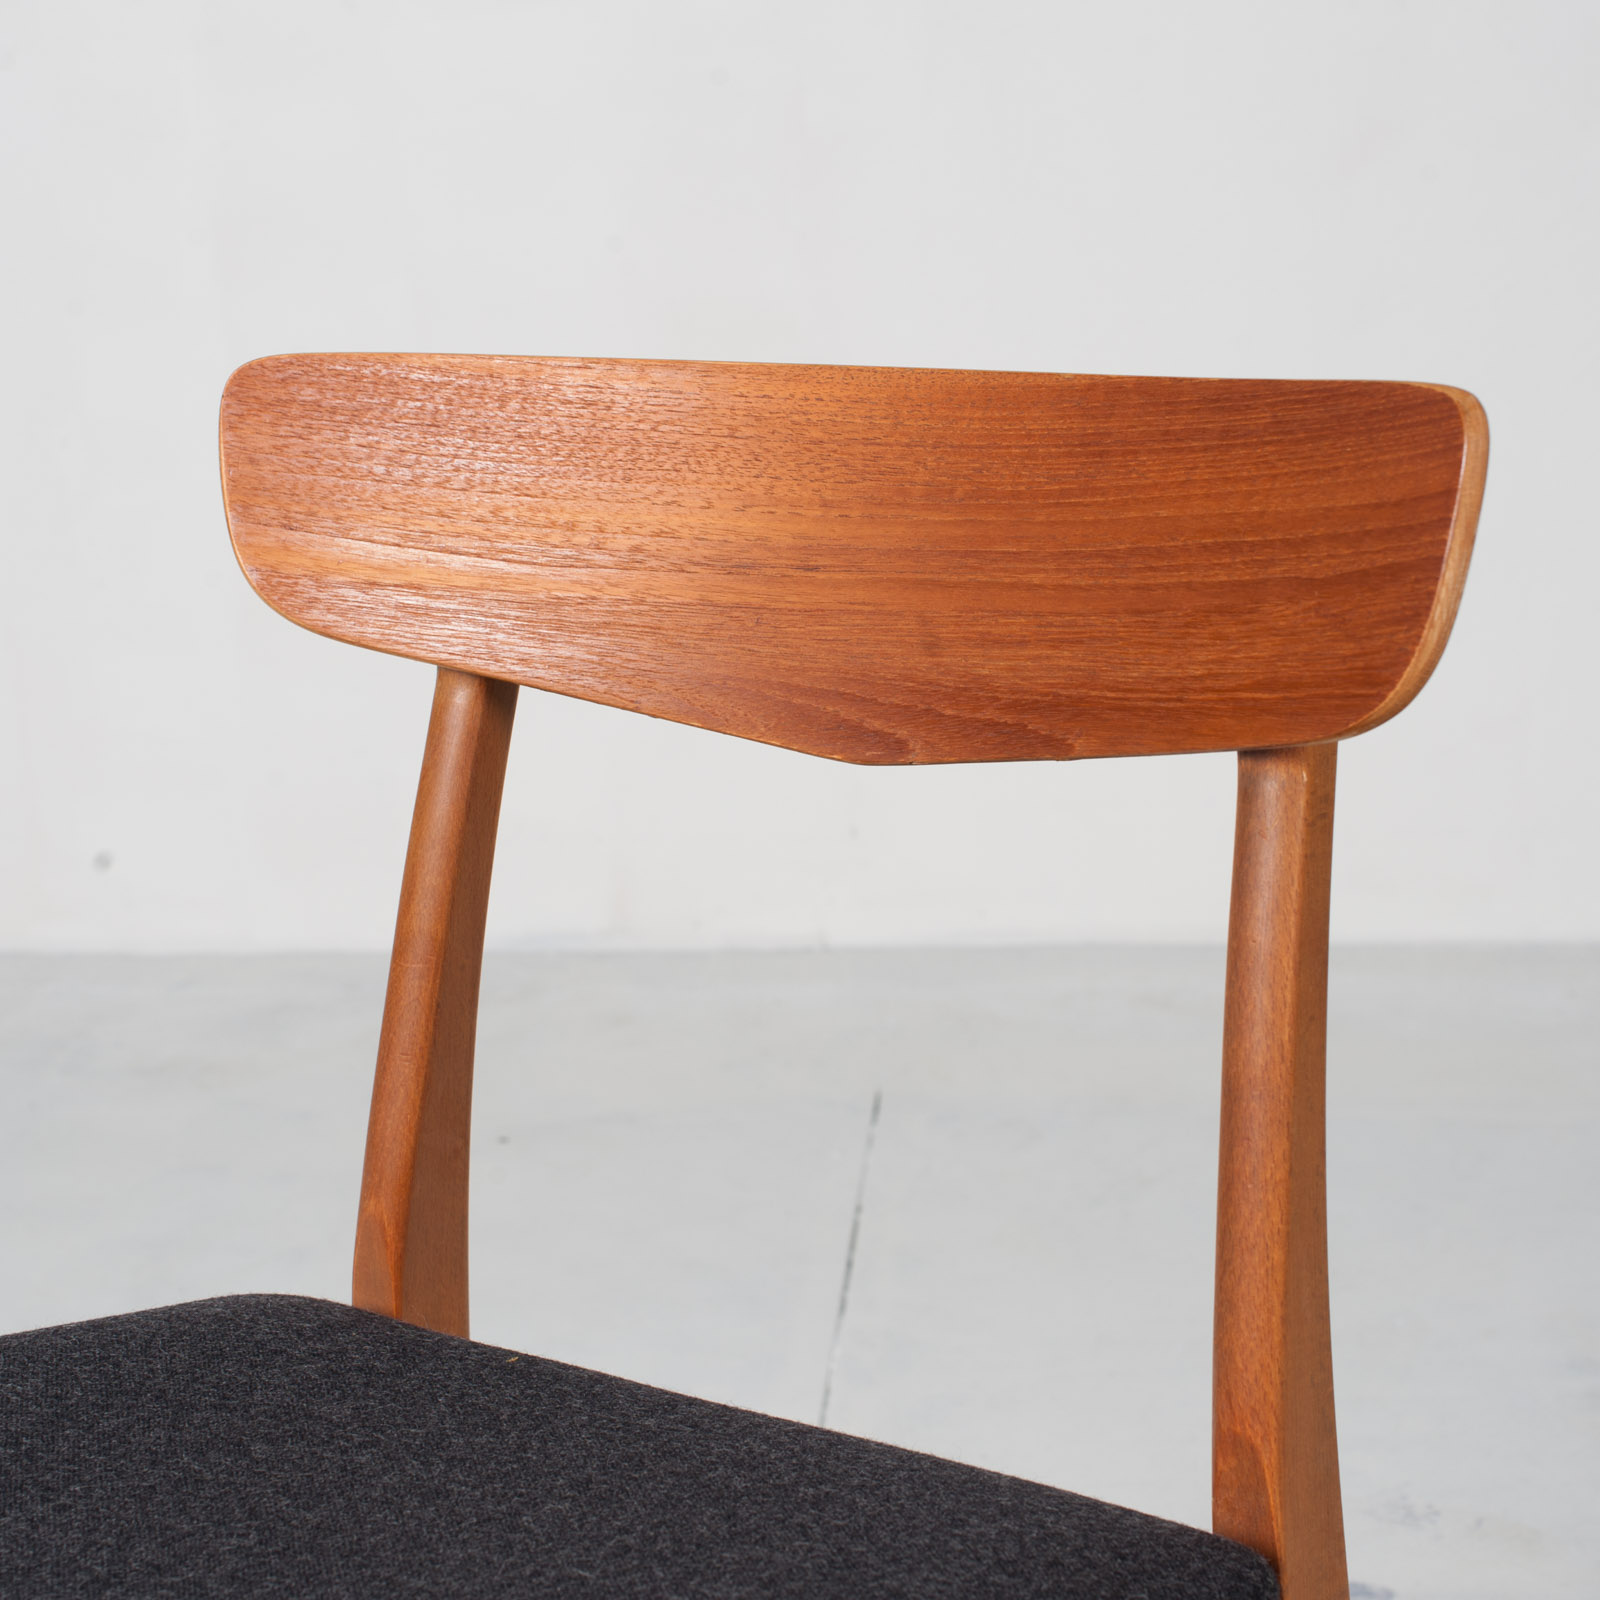 V Back Dining Chairs By Farstrup In Teak And New Navy Upholstery 1960s Denmark 03